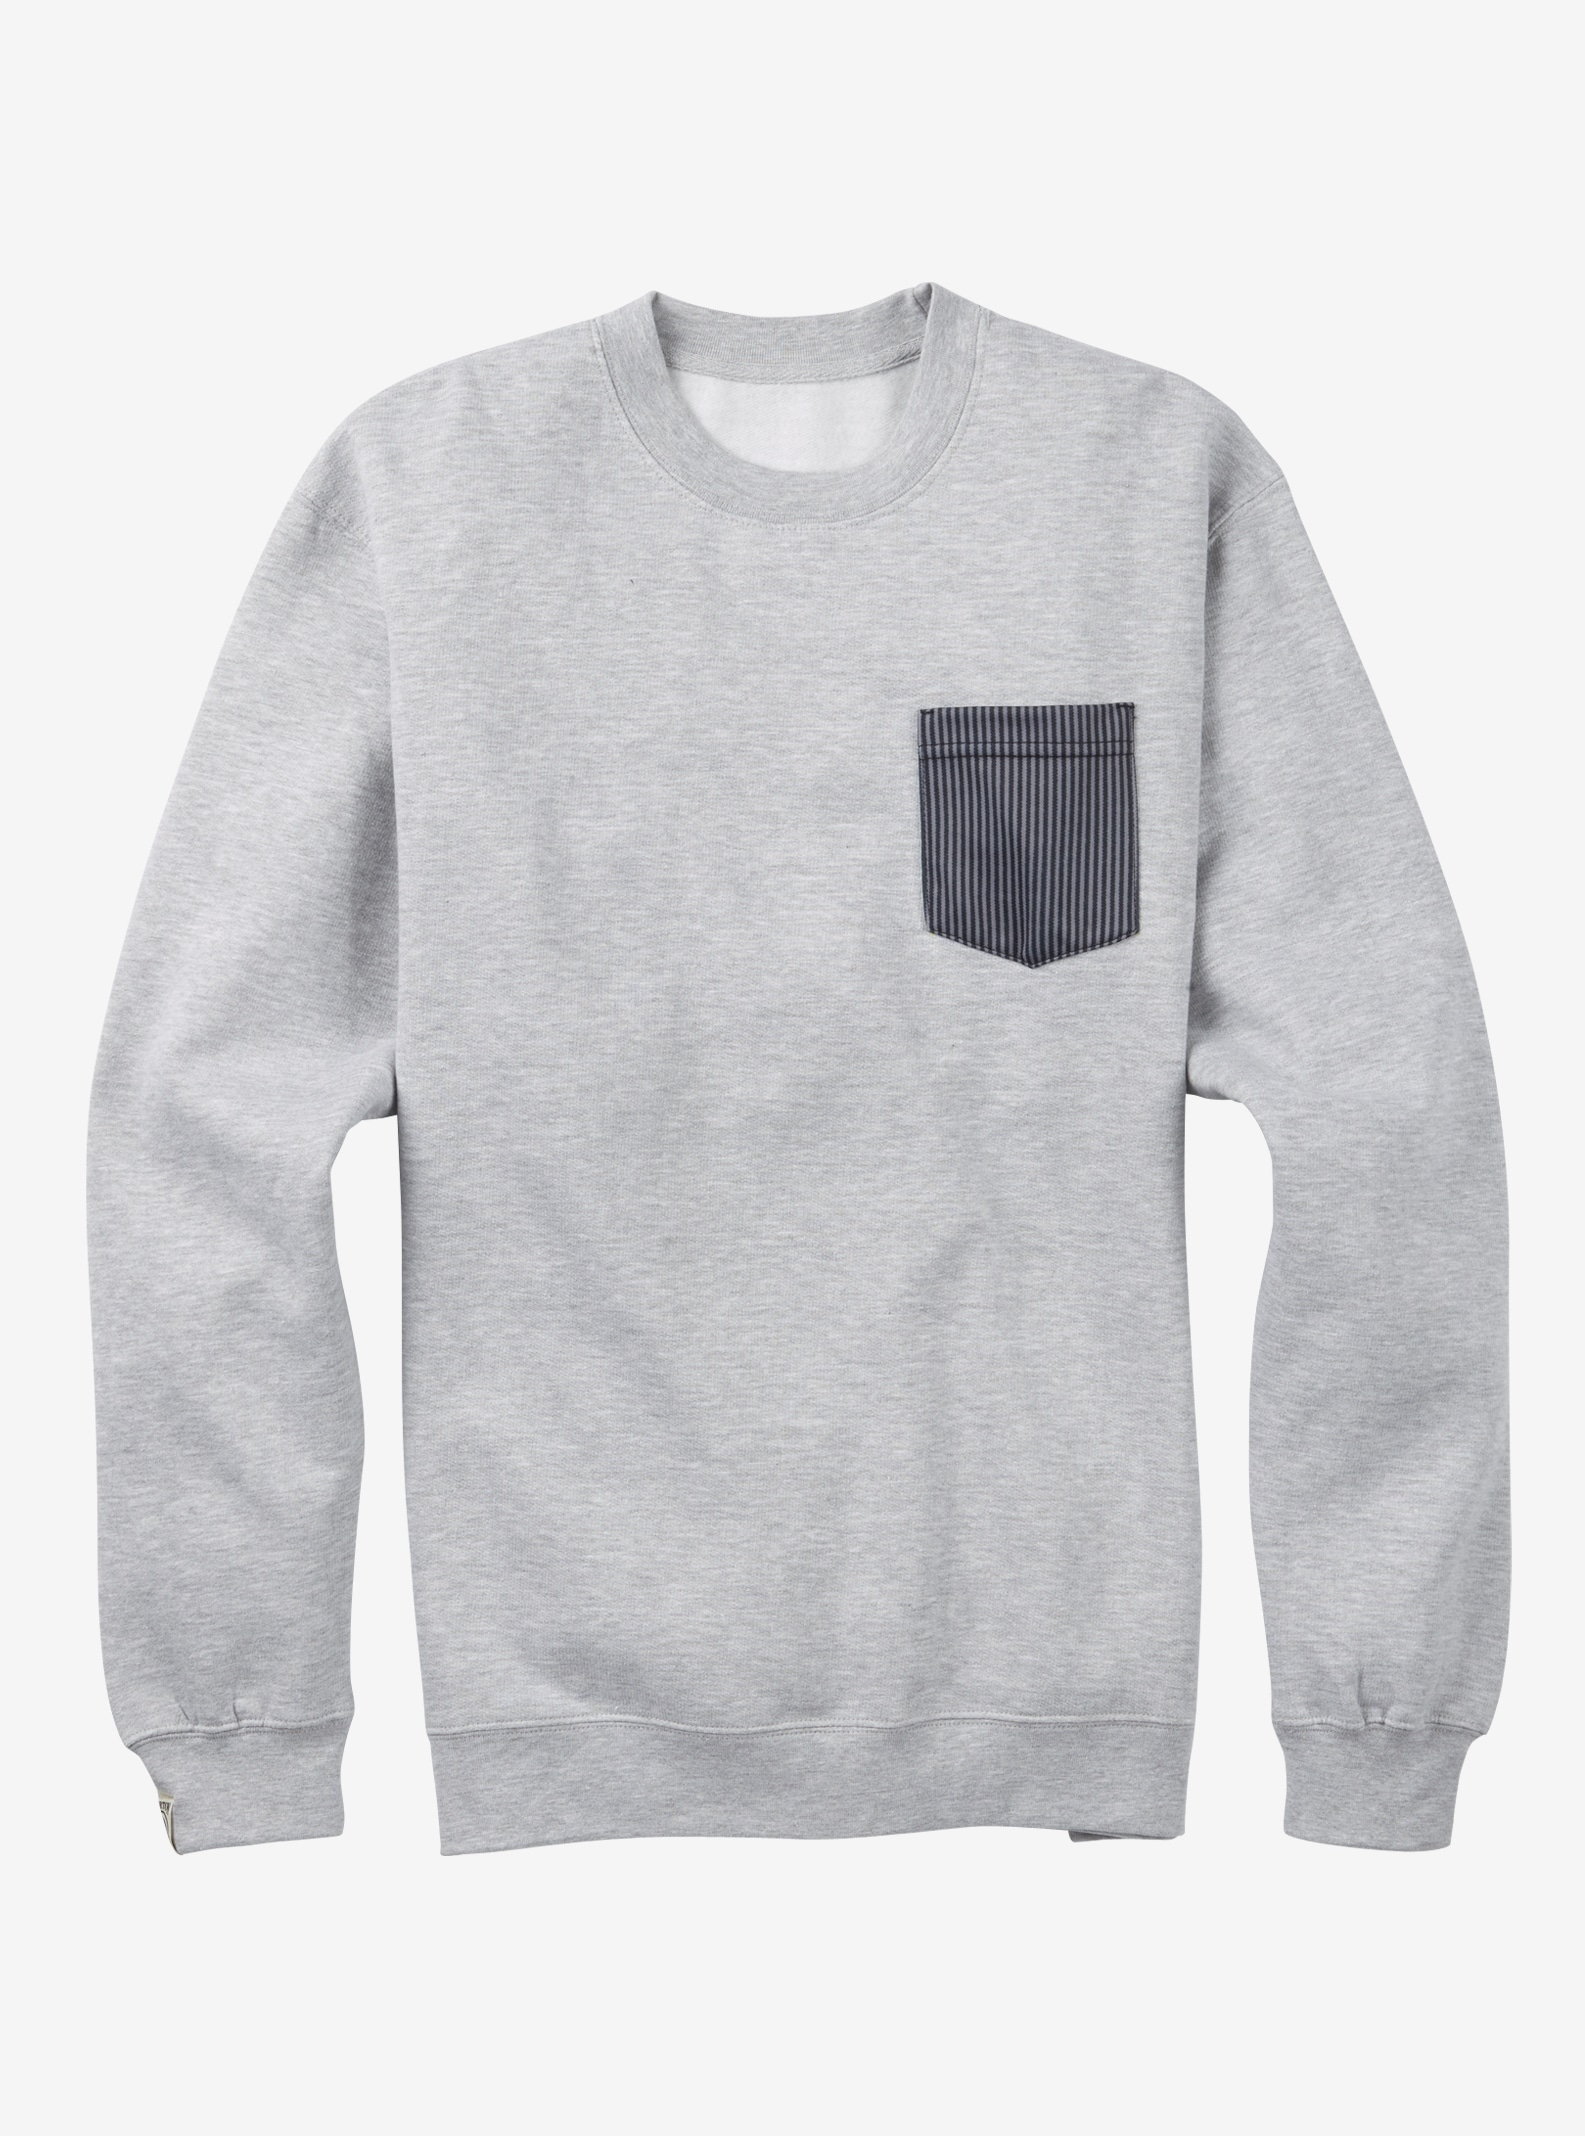 Burton US Open Bolt Crew shown in Gray Heather